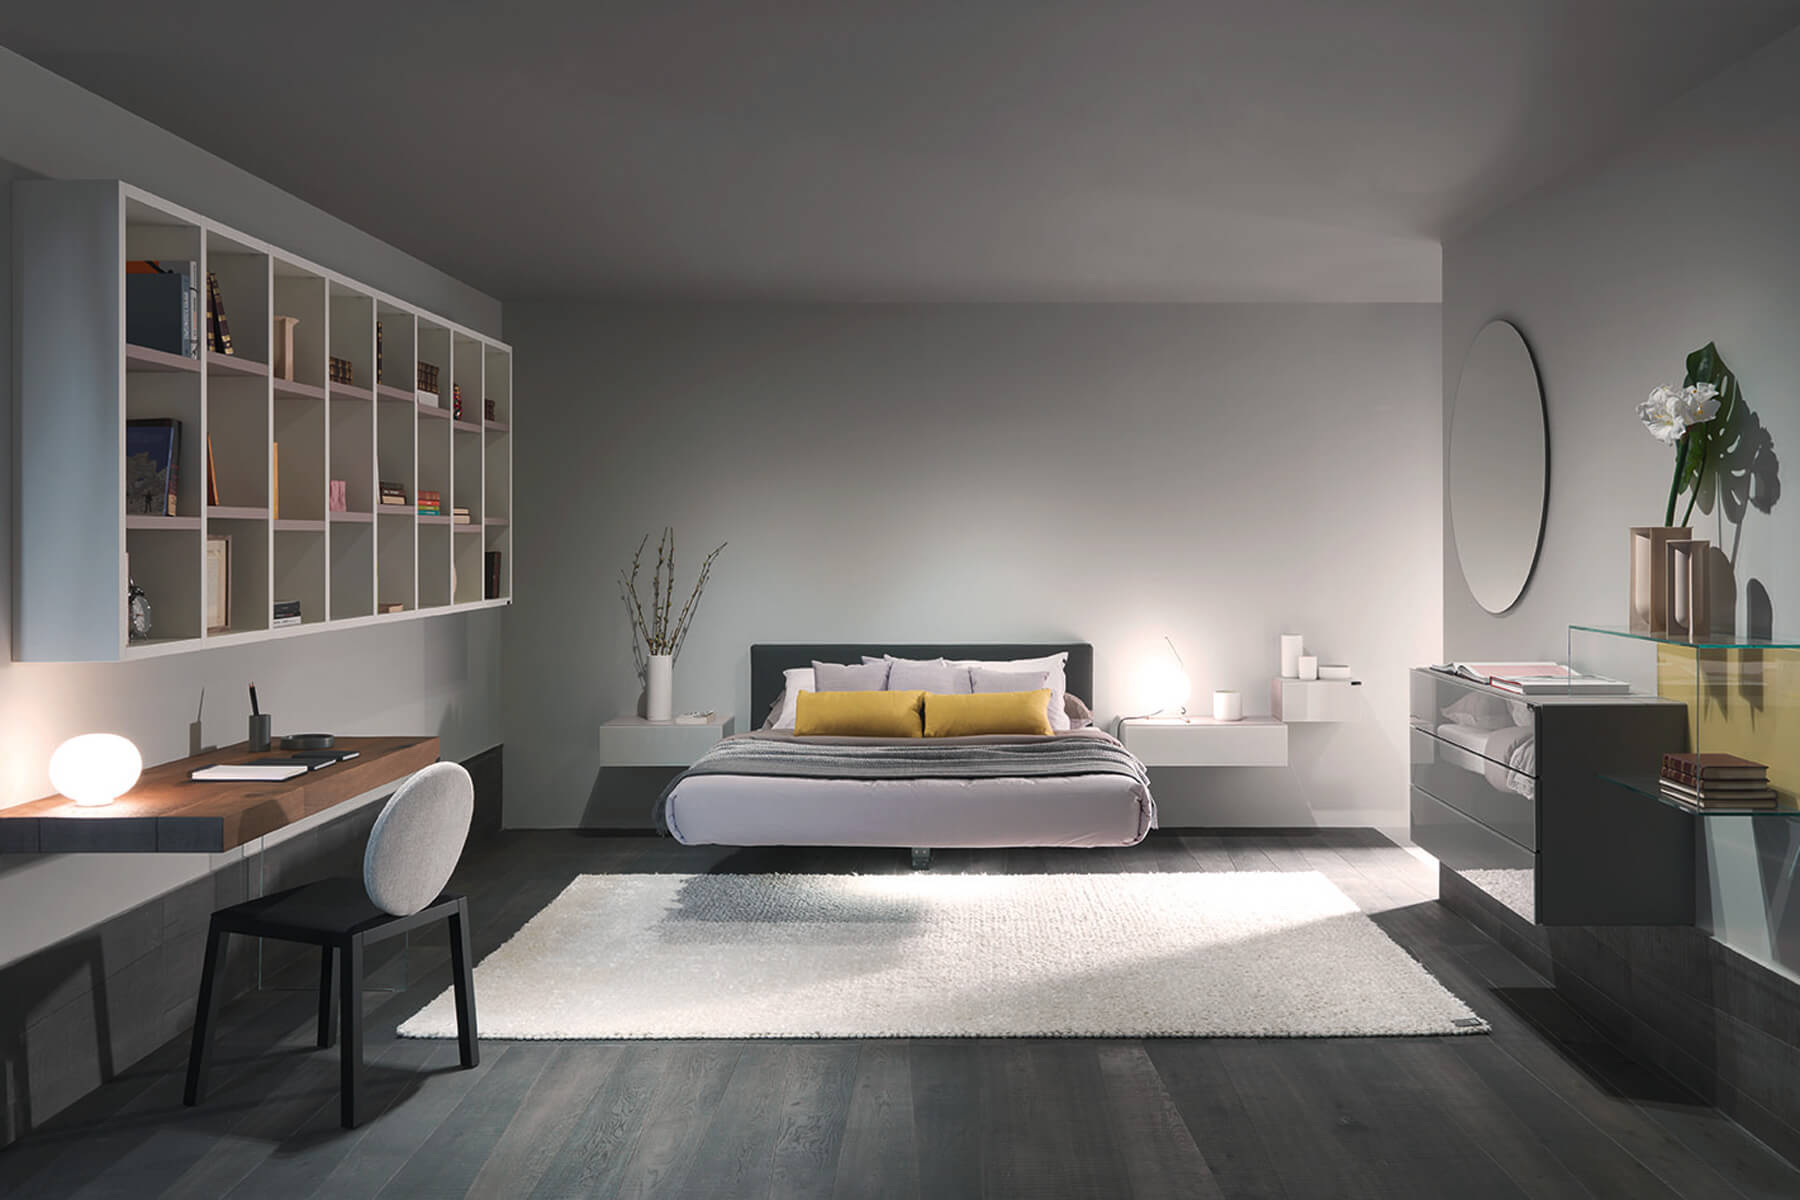 Best letto sospeso lago gallery for Franchino arredamenti